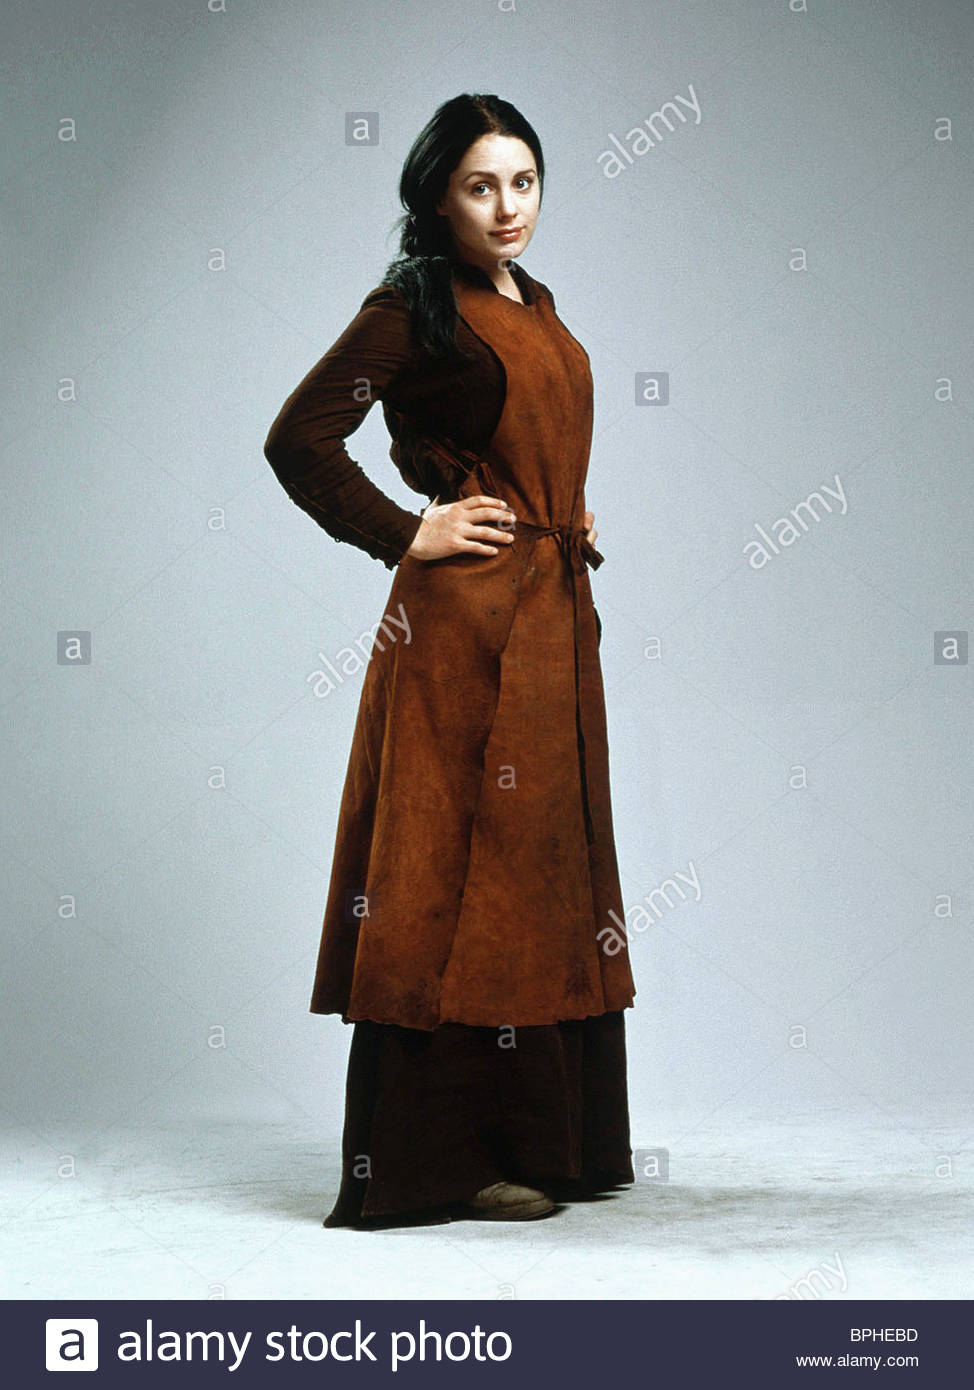 Laura Fraser Stock Photos & Laura Fraser Stock Images - AlamyLaura Fraser A Knights Tale